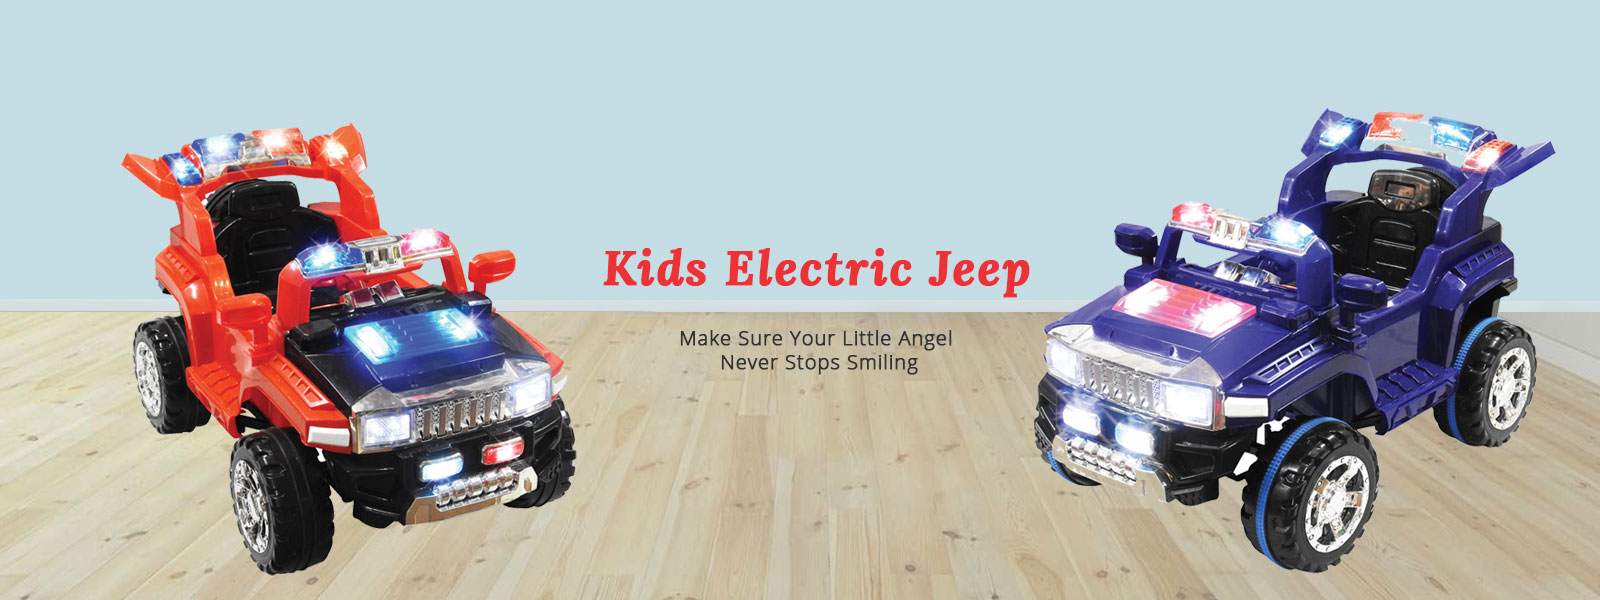 Kids Electric Jeep Manufacturers in Chandigarh